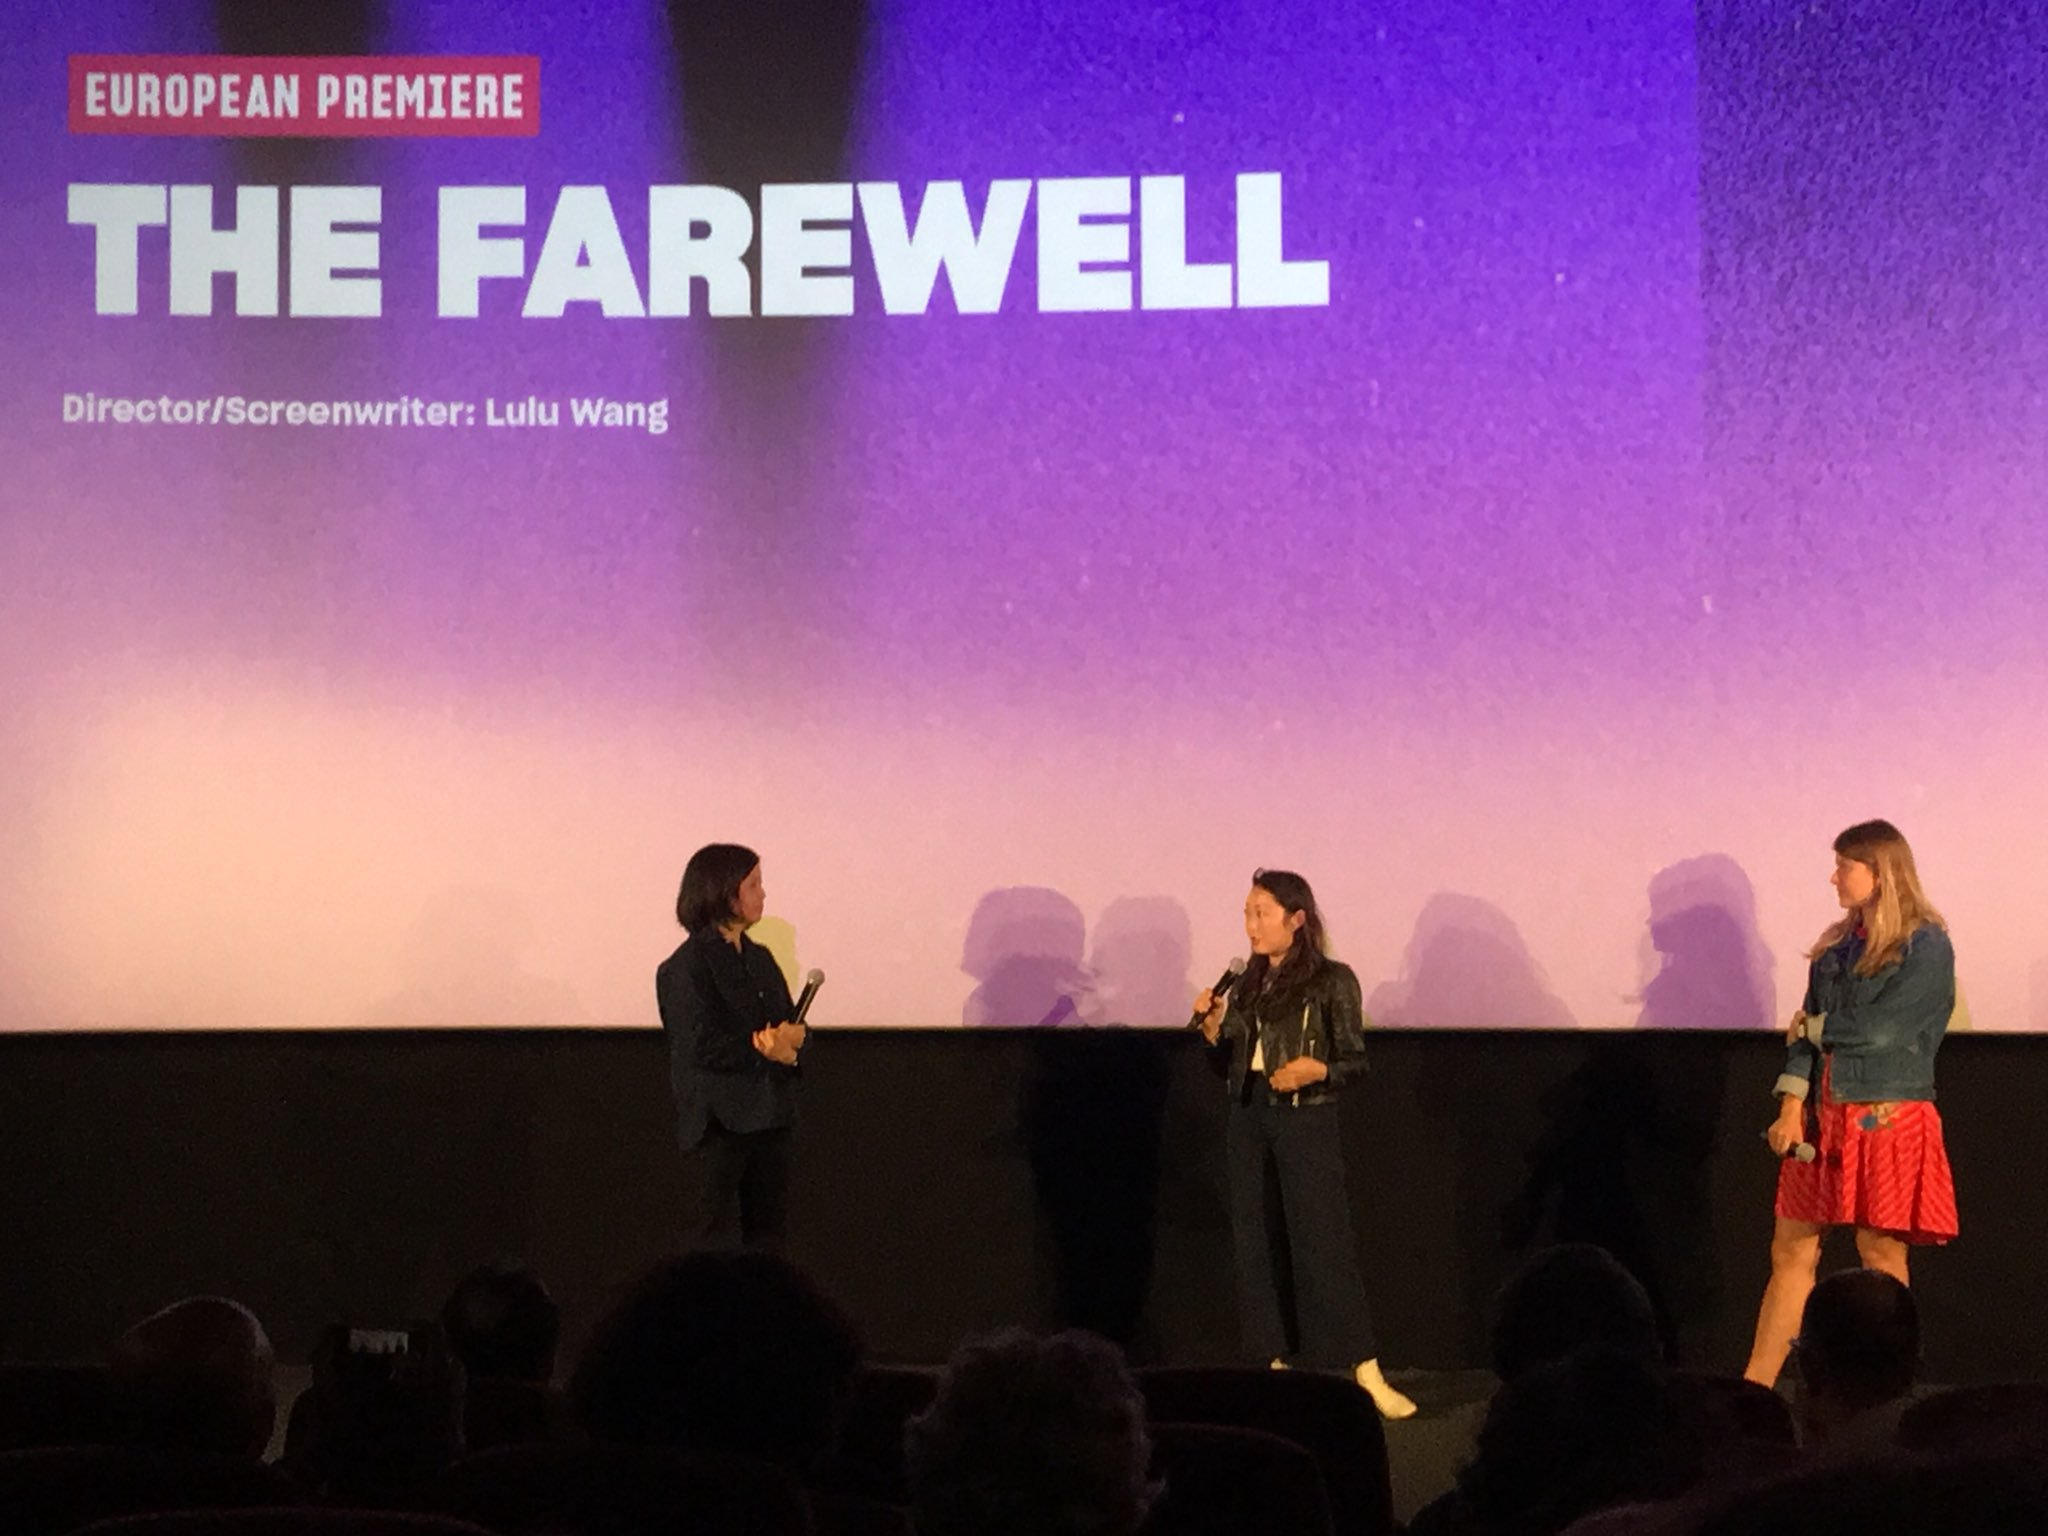 Lulu Wang discussing The Farewell at the European Premiere at Sundance London on 1st June 2019